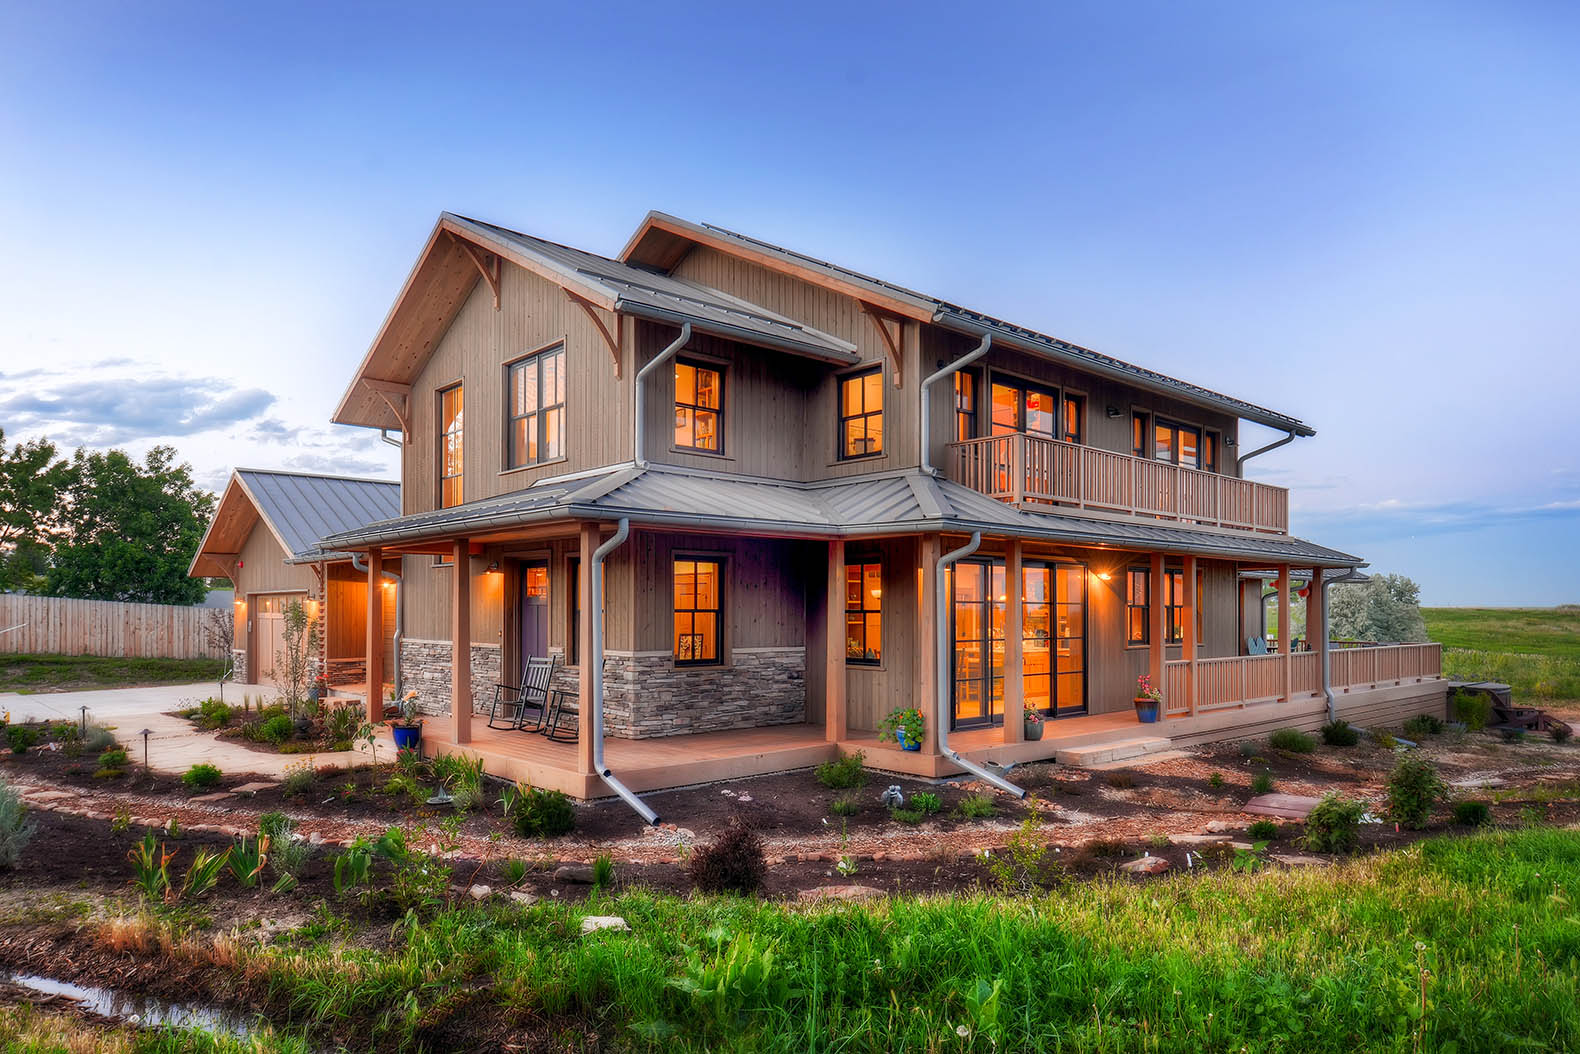 Colorado Utility Pays Regenerative Farmhouse Owners Up To $120 For Their  Solar Energy